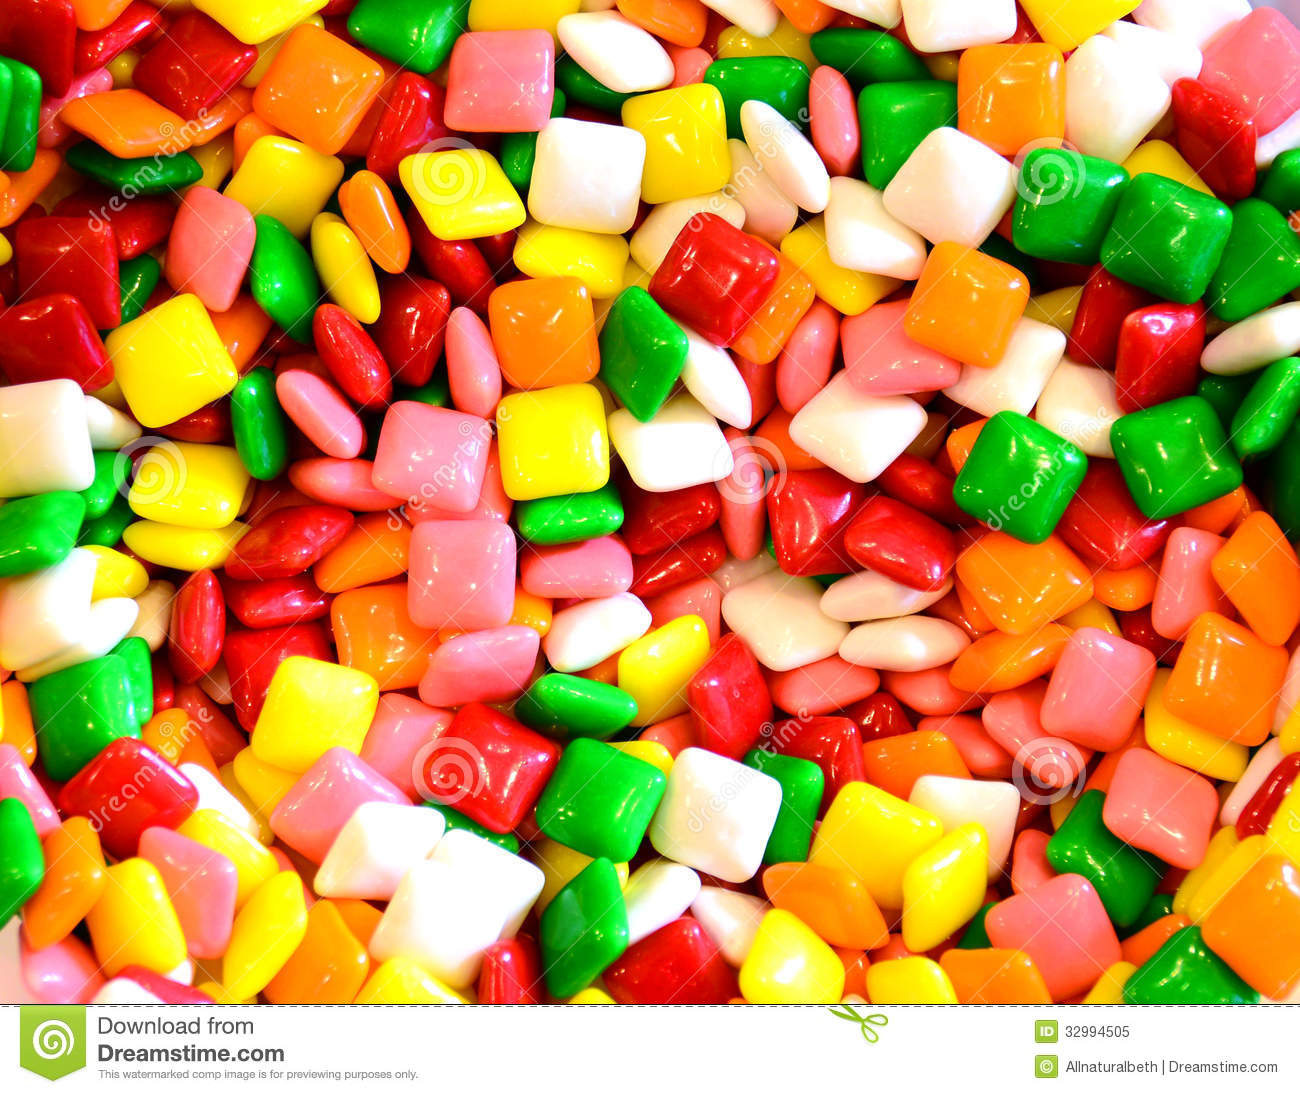 Square Gum Or Candy Background Royalty Free Stock Photo - Image ...